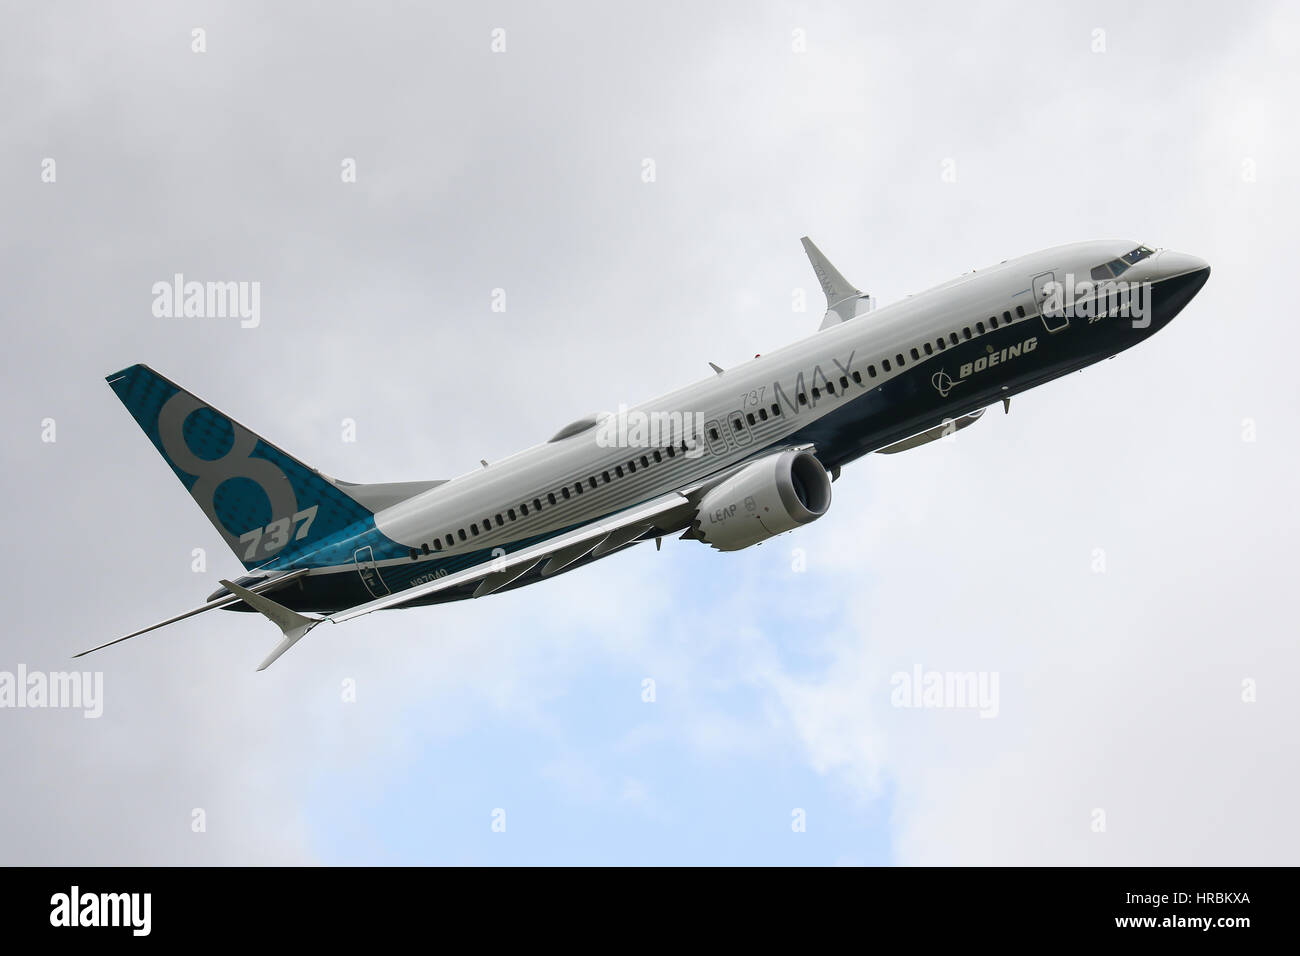 Boeing 737 800 Max: Boeing 737 Max Stock Photos & Boeing 737 Max Stock Images